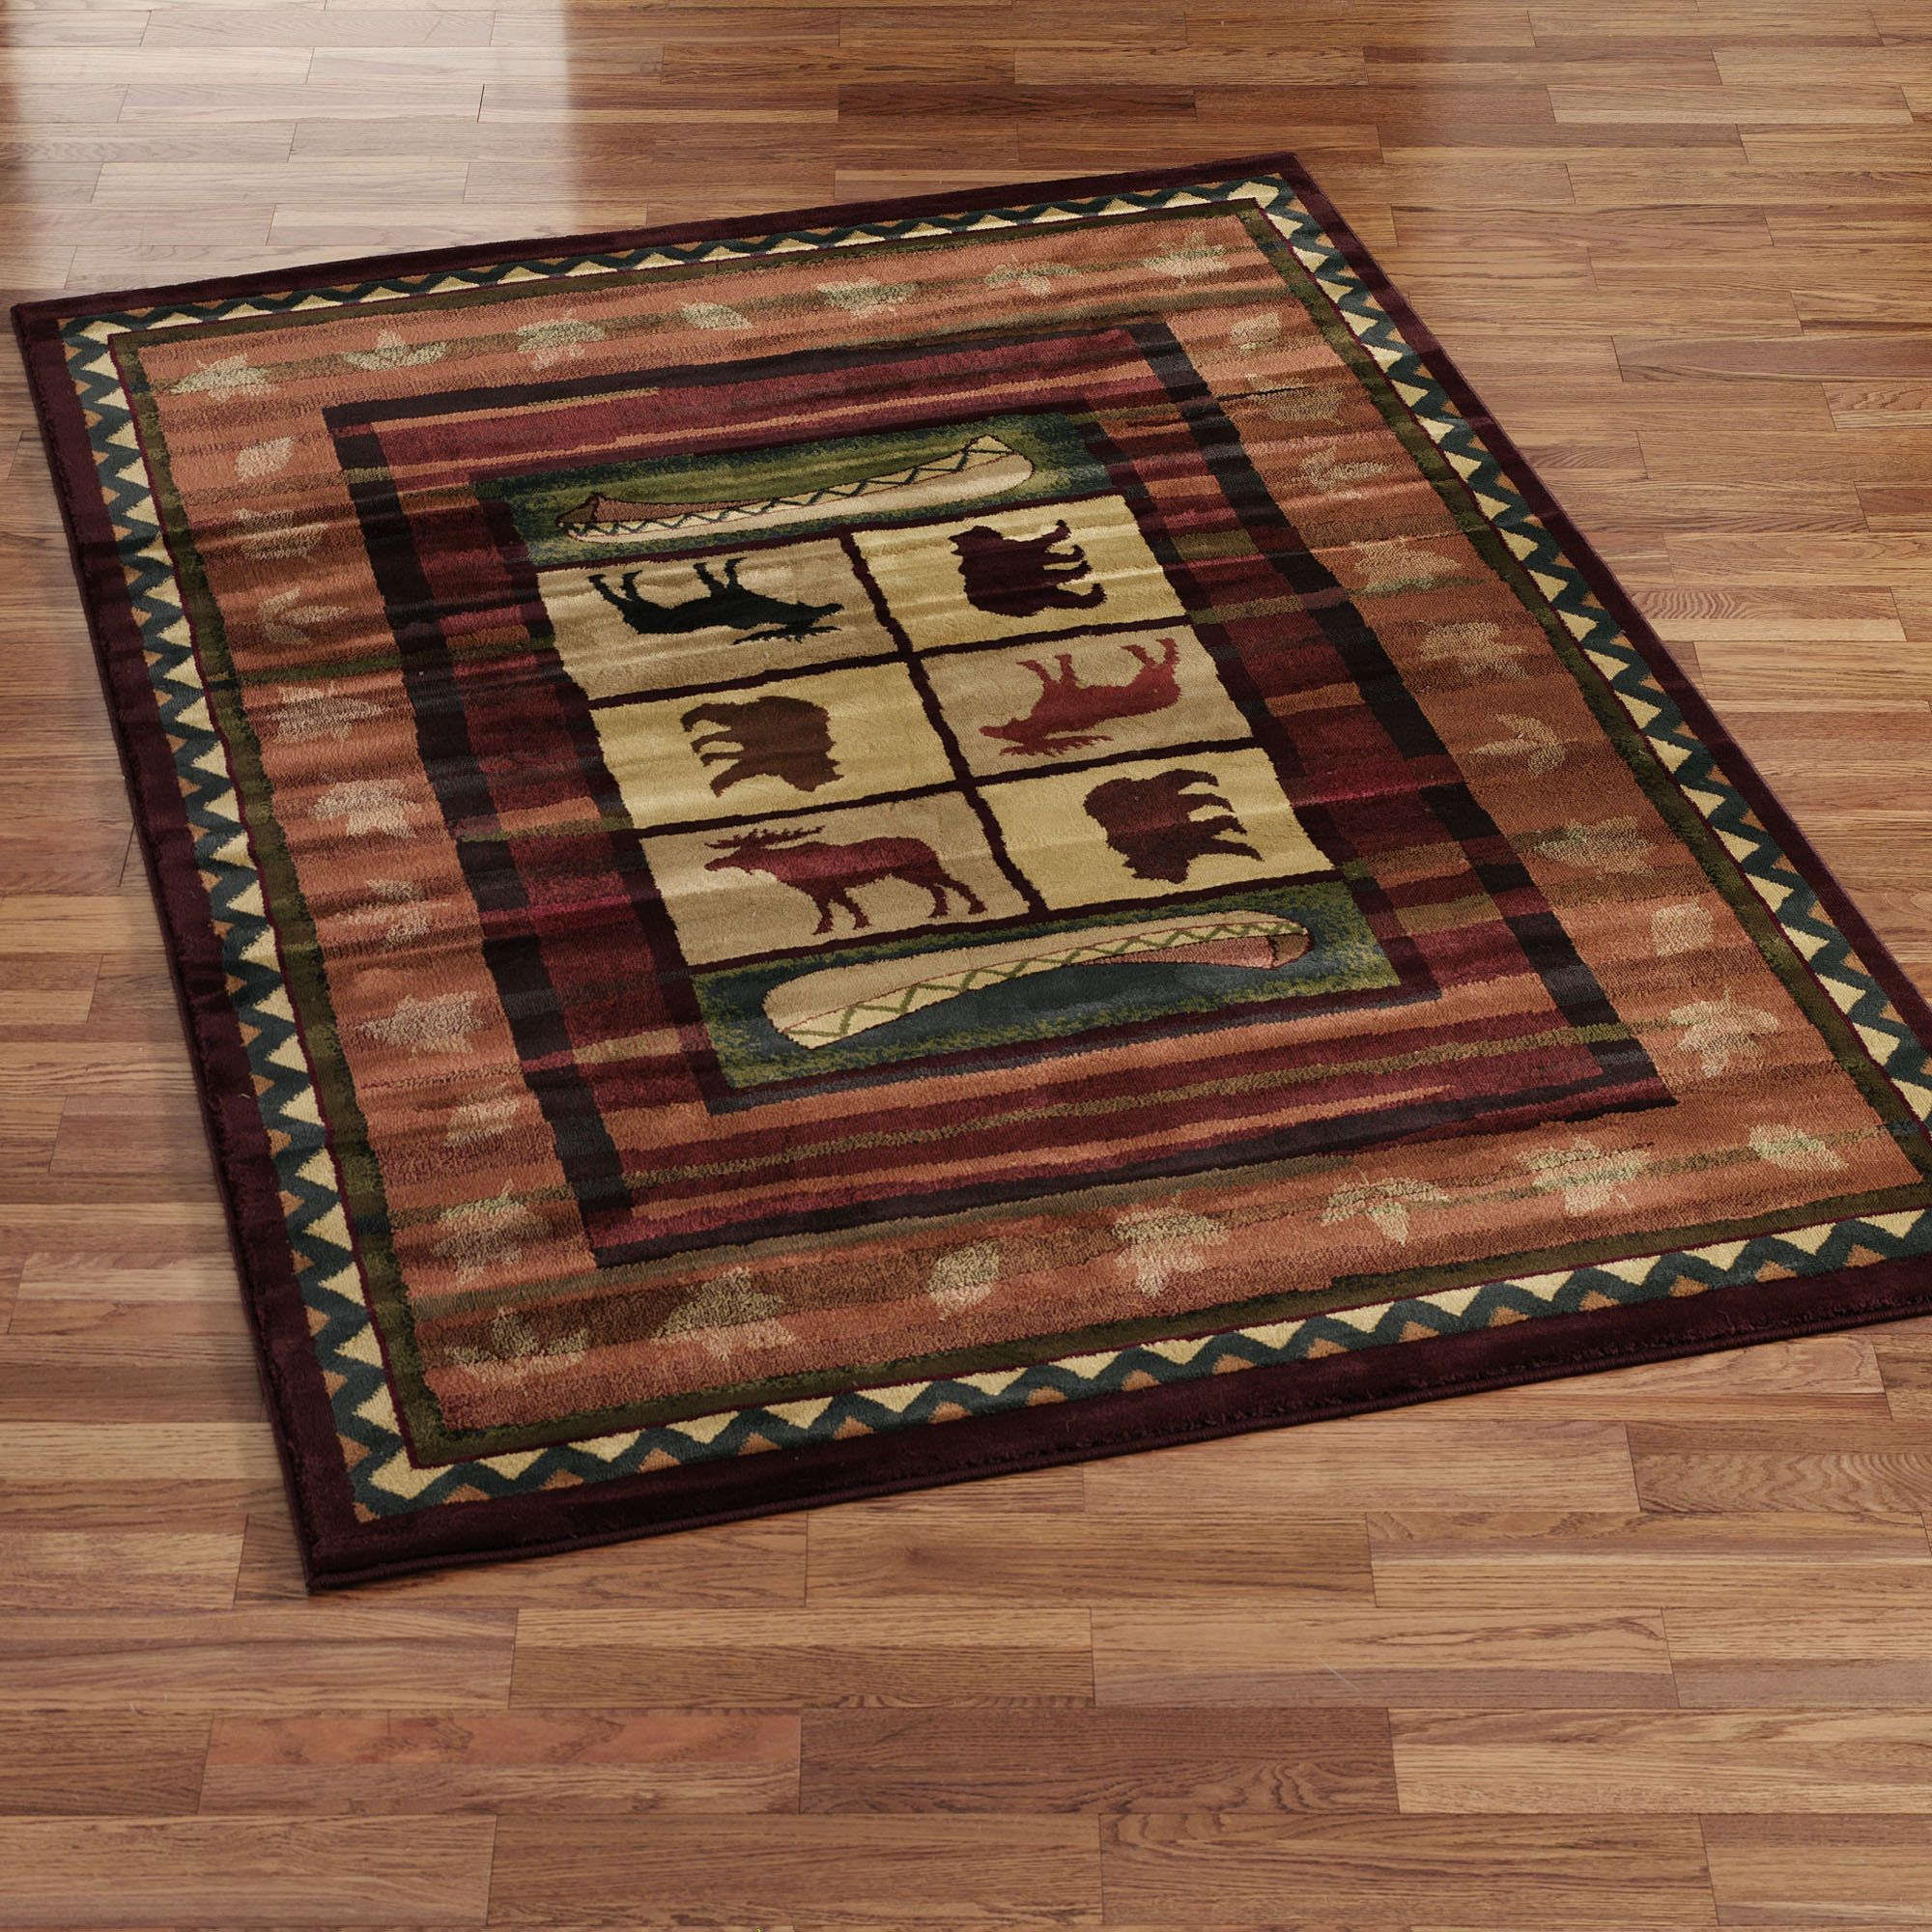 Cabin Area Rugs For A Cabin Or Lodge Themed Home The